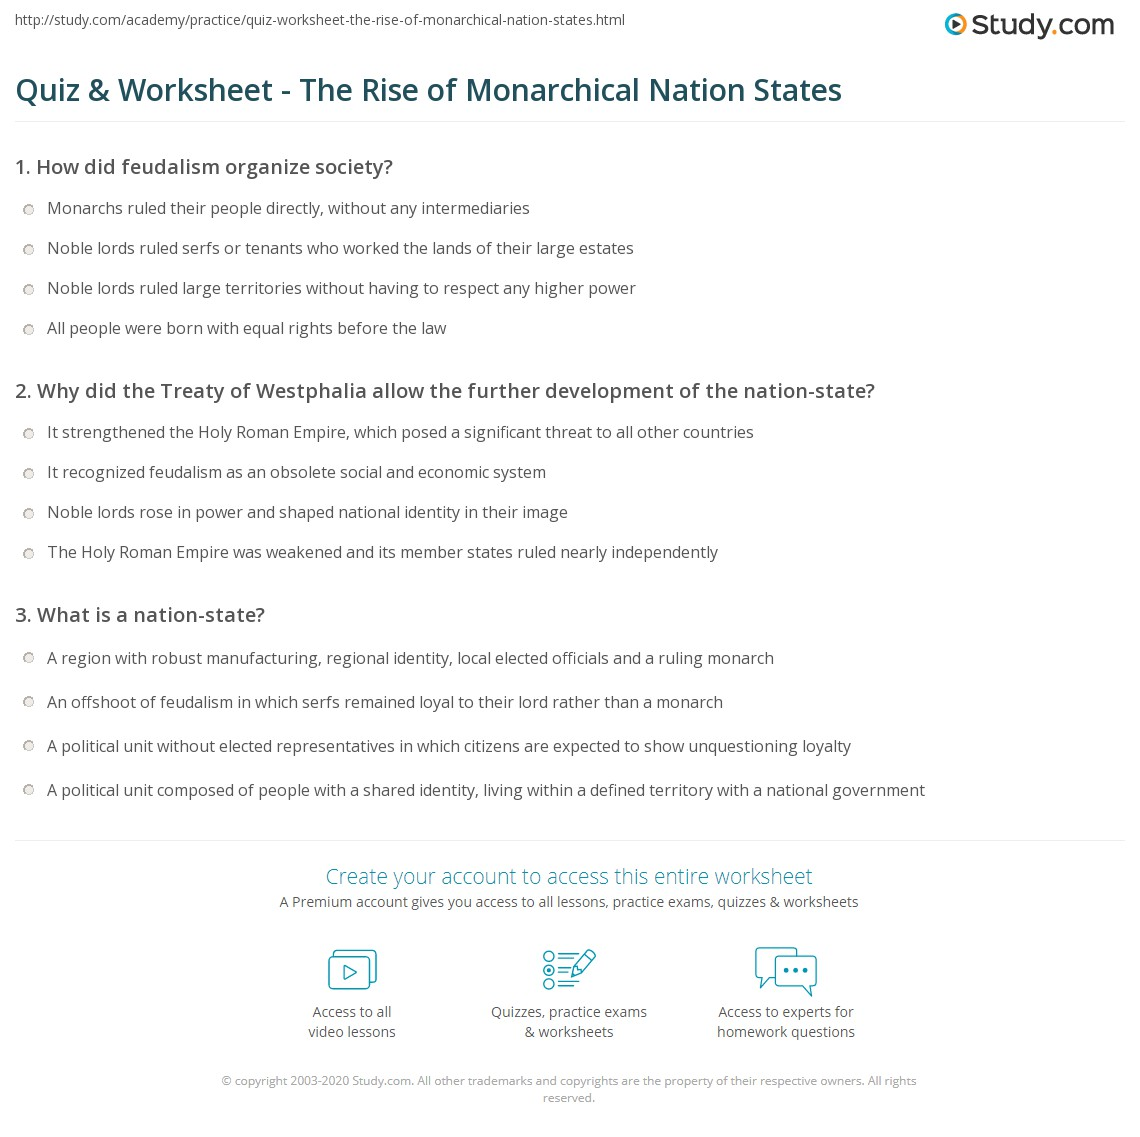 Workbooks learning the states worksheets : Quiz & Worksheet - The Rise of Monarchical Nation States | Study.com